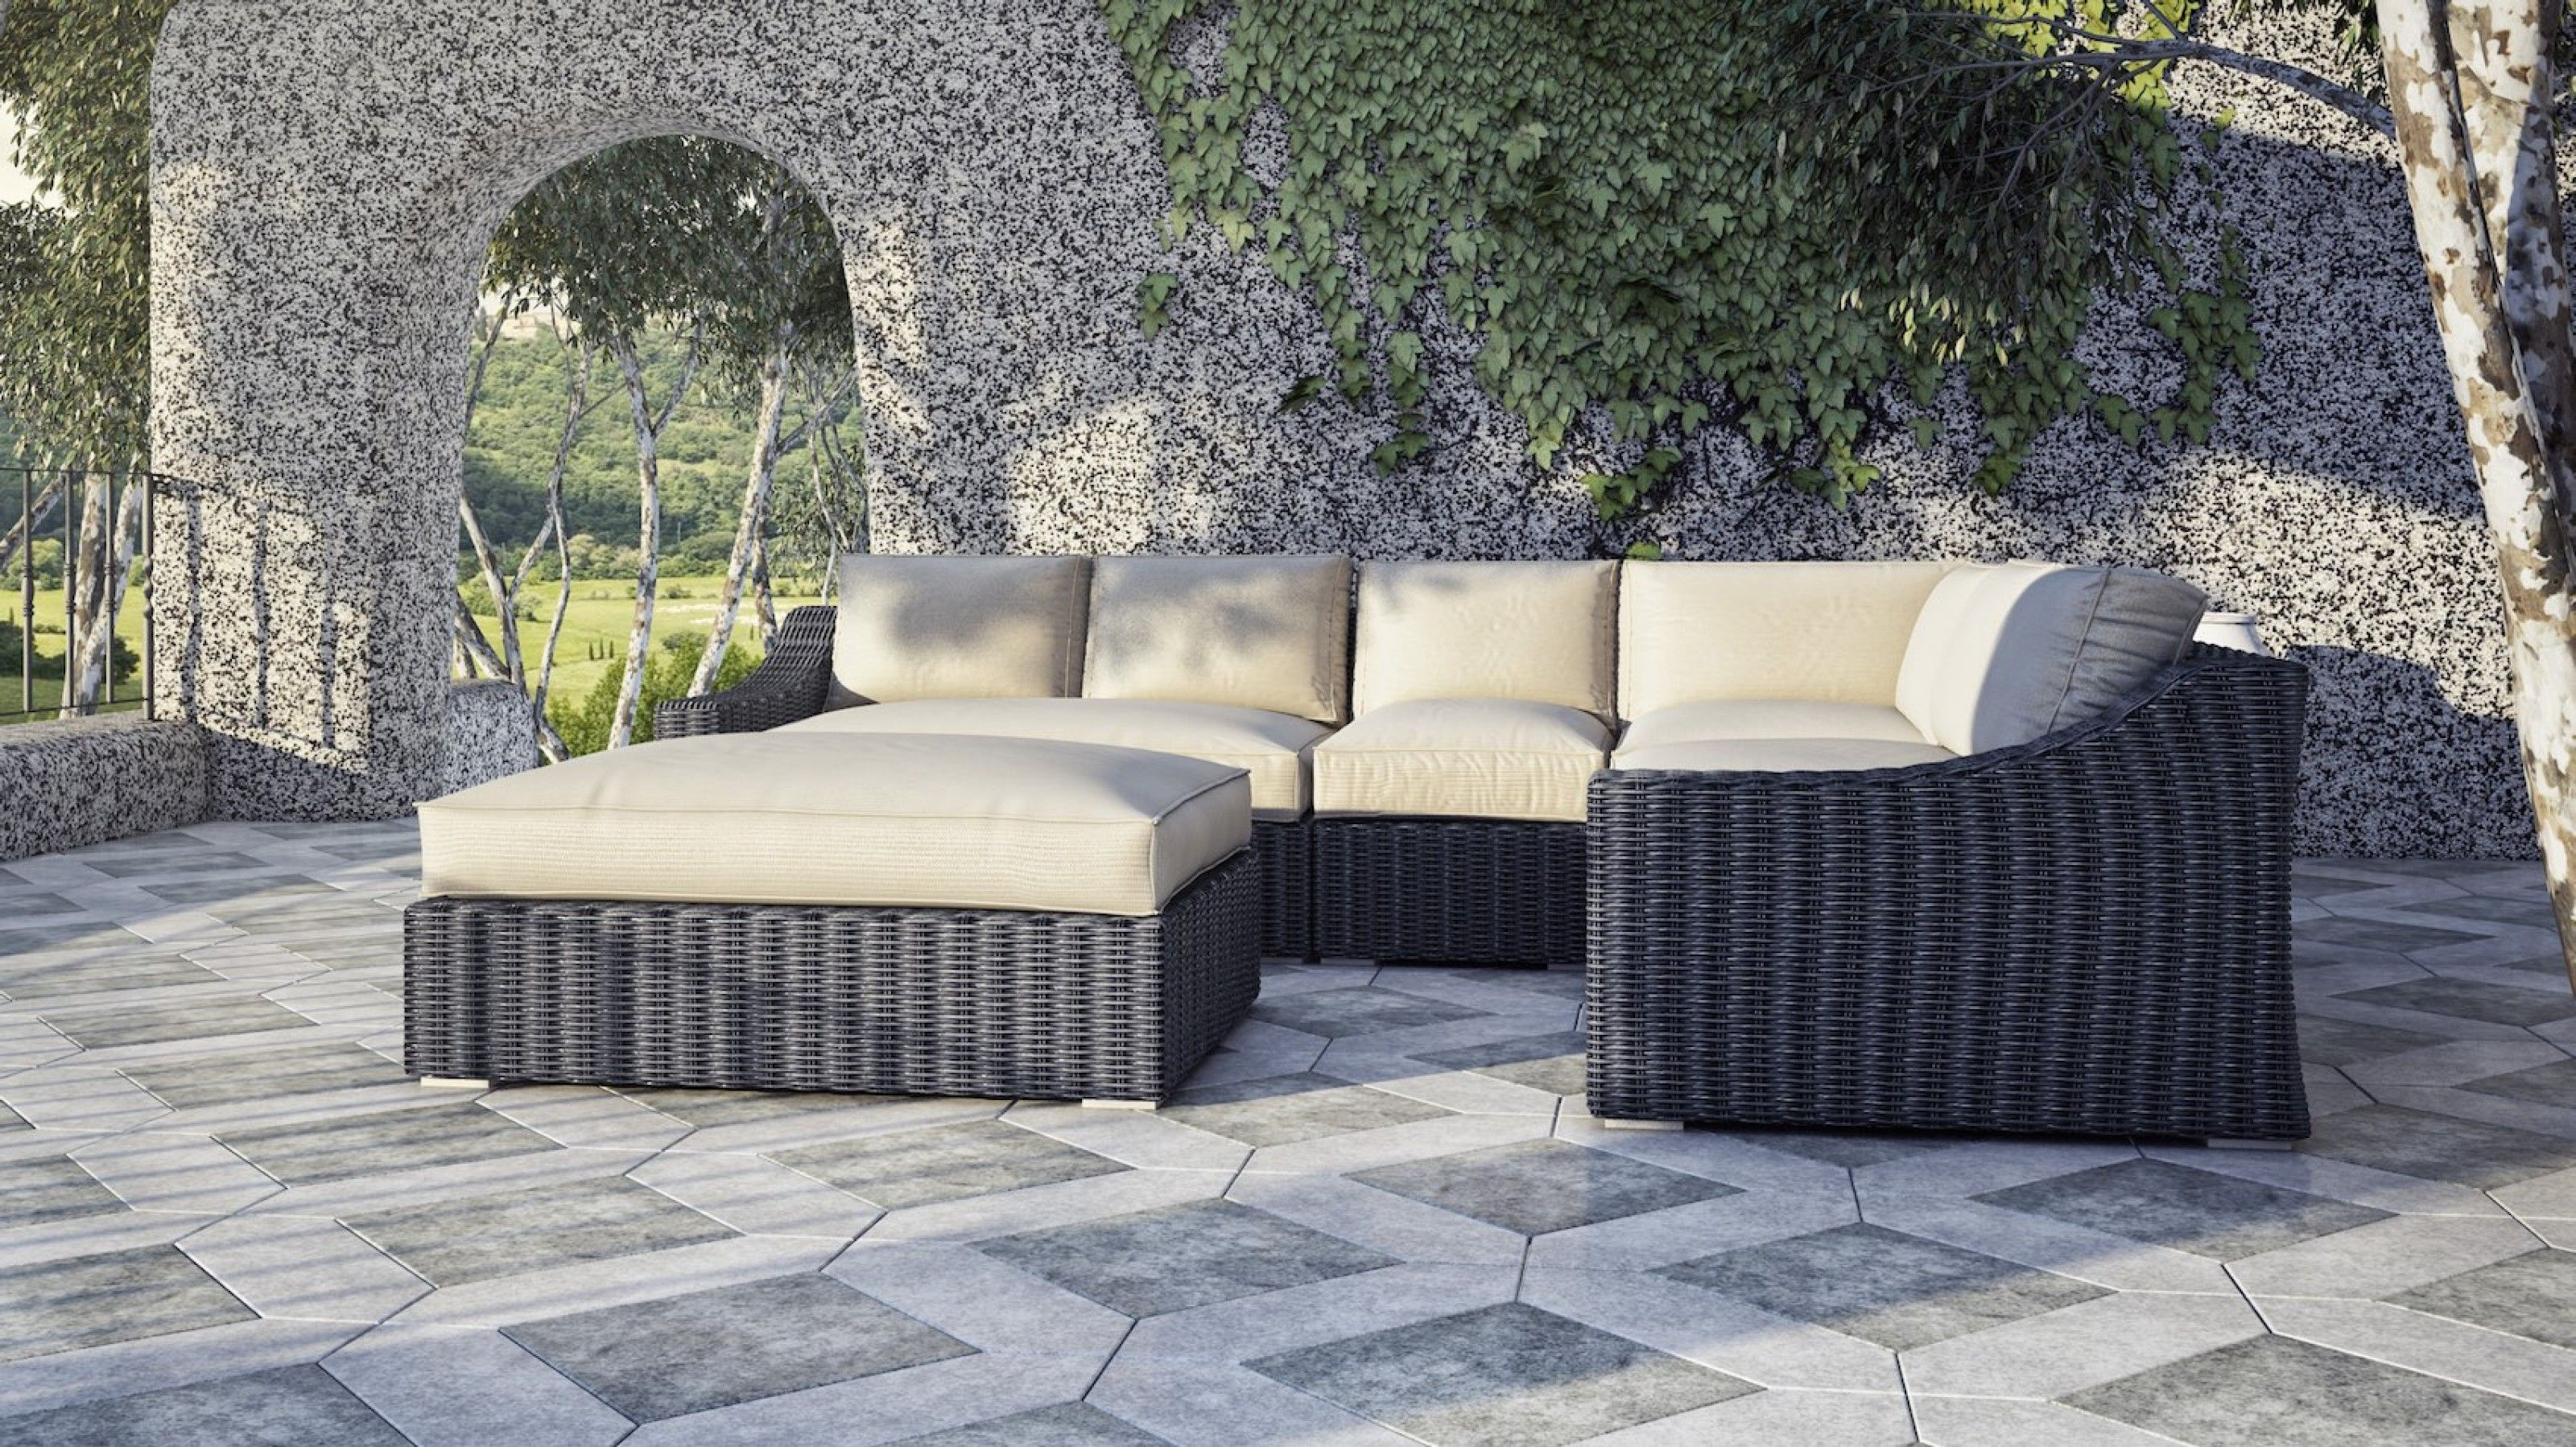 Tuscan Sectional Set 3 200 Includes Left Arm Middle Corner Right Arm And Ottoman All Cushions Made With Sun Outdoor Furniture Sets Patio Patio Furniture